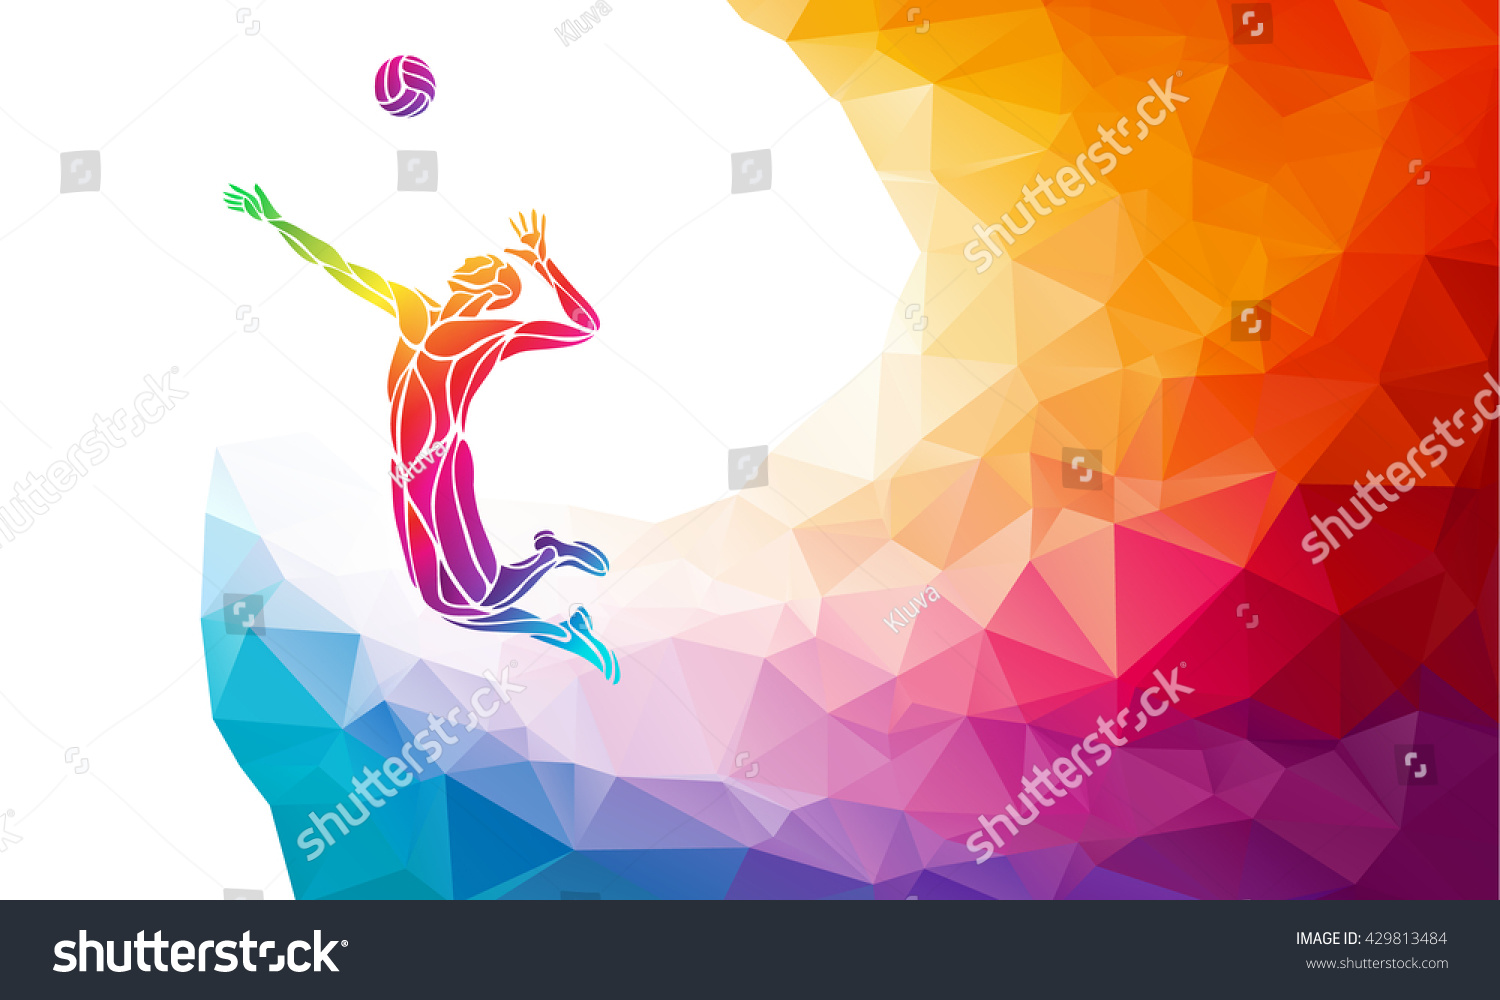 Illustration Abstract Volleyball Player Silhouette: Creative Silhouette Volleyball Player Team Sport Stock